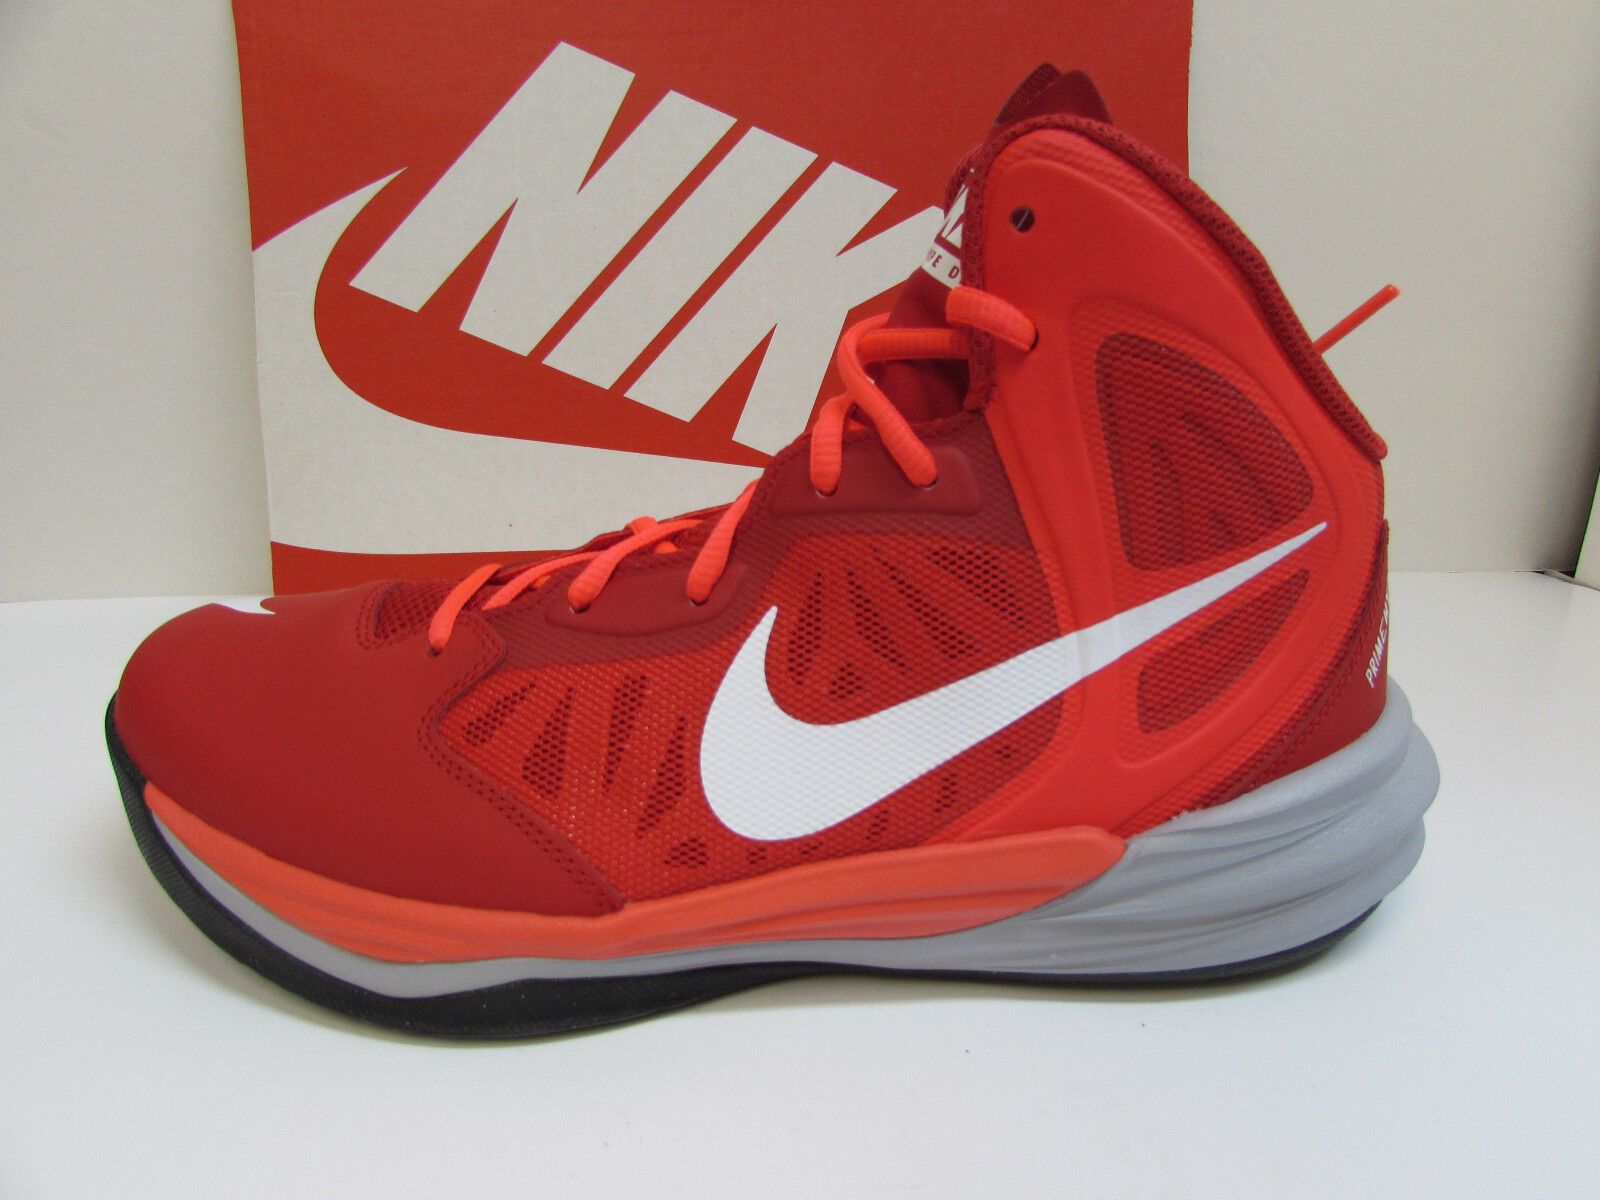 Nike Size 12 Hi  Red Prime Hype Hi 12 Tops Sneakers New Mens Shoes 91c7a5